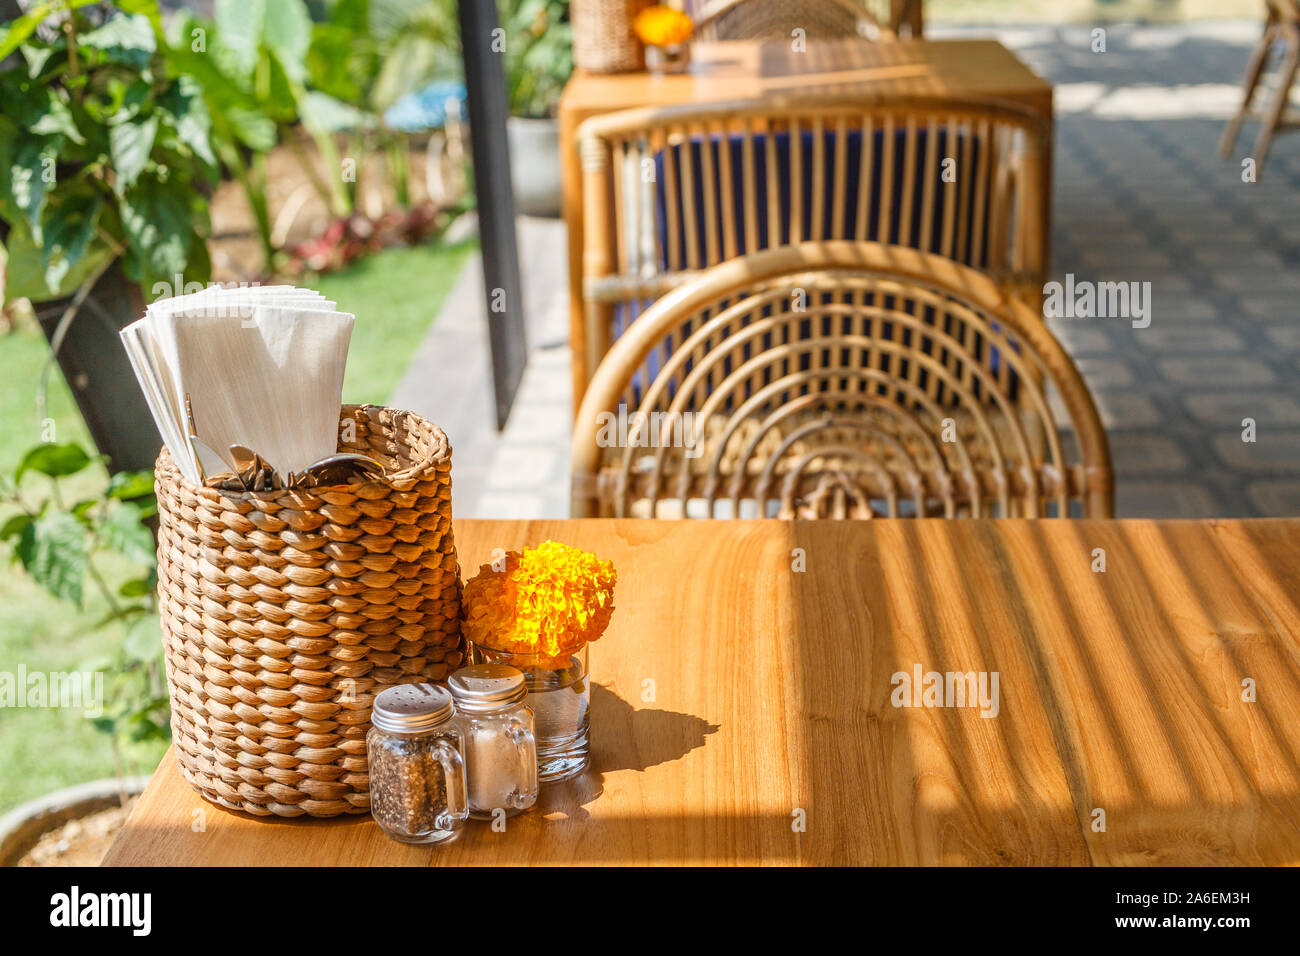 Natural color wooden and rattan furniture at an outdoor cafe. Blue cushions, fresh Marigold flowers, thatched tissue holders. Sunny morning. Stock Photo